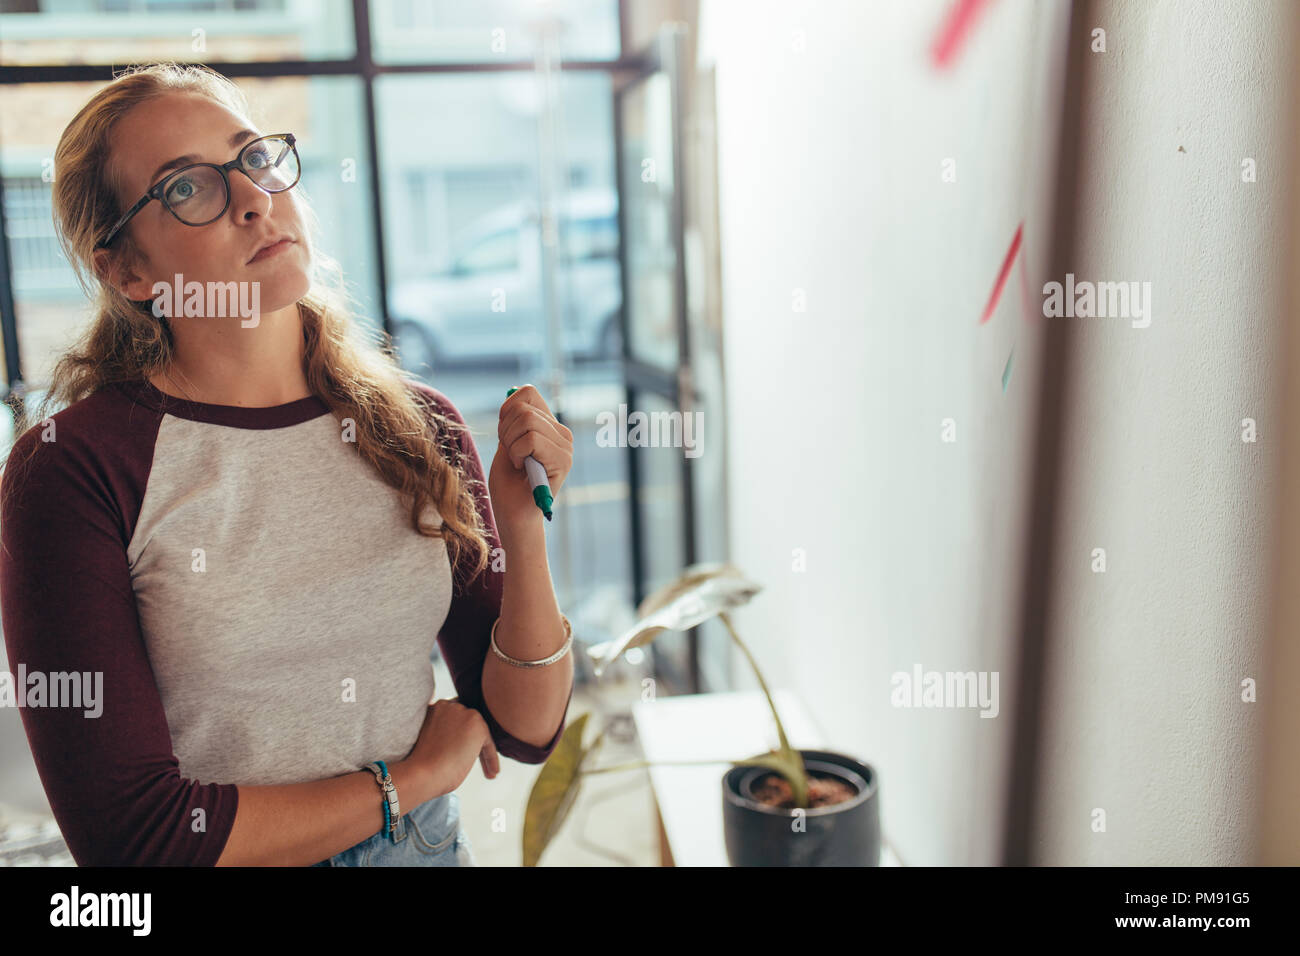 Young woman standing in office and looking at the presentation board thinking. Female computer programmer thinking over new project plan at tech start - Stock Image